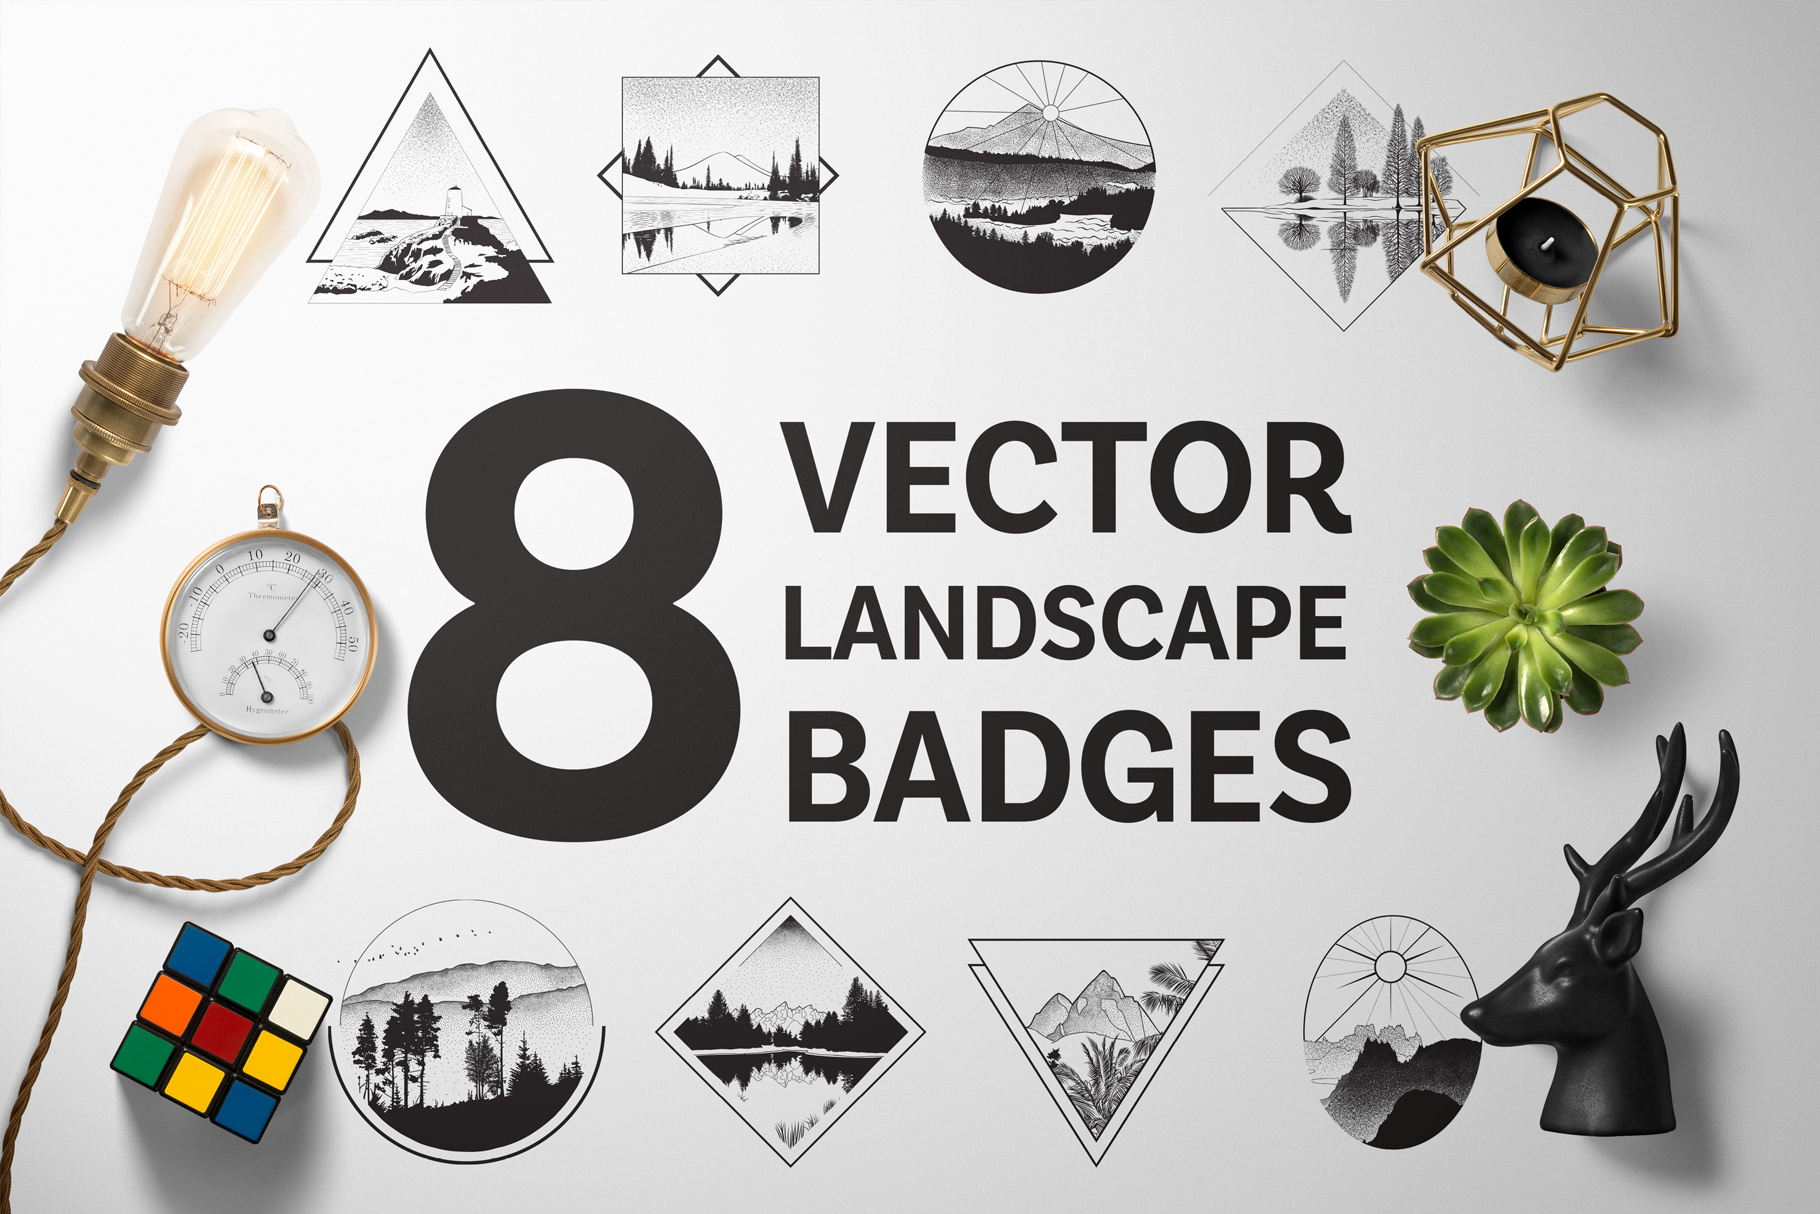 8 Vector Landscape Badges Graphic Illustrations By magofonts